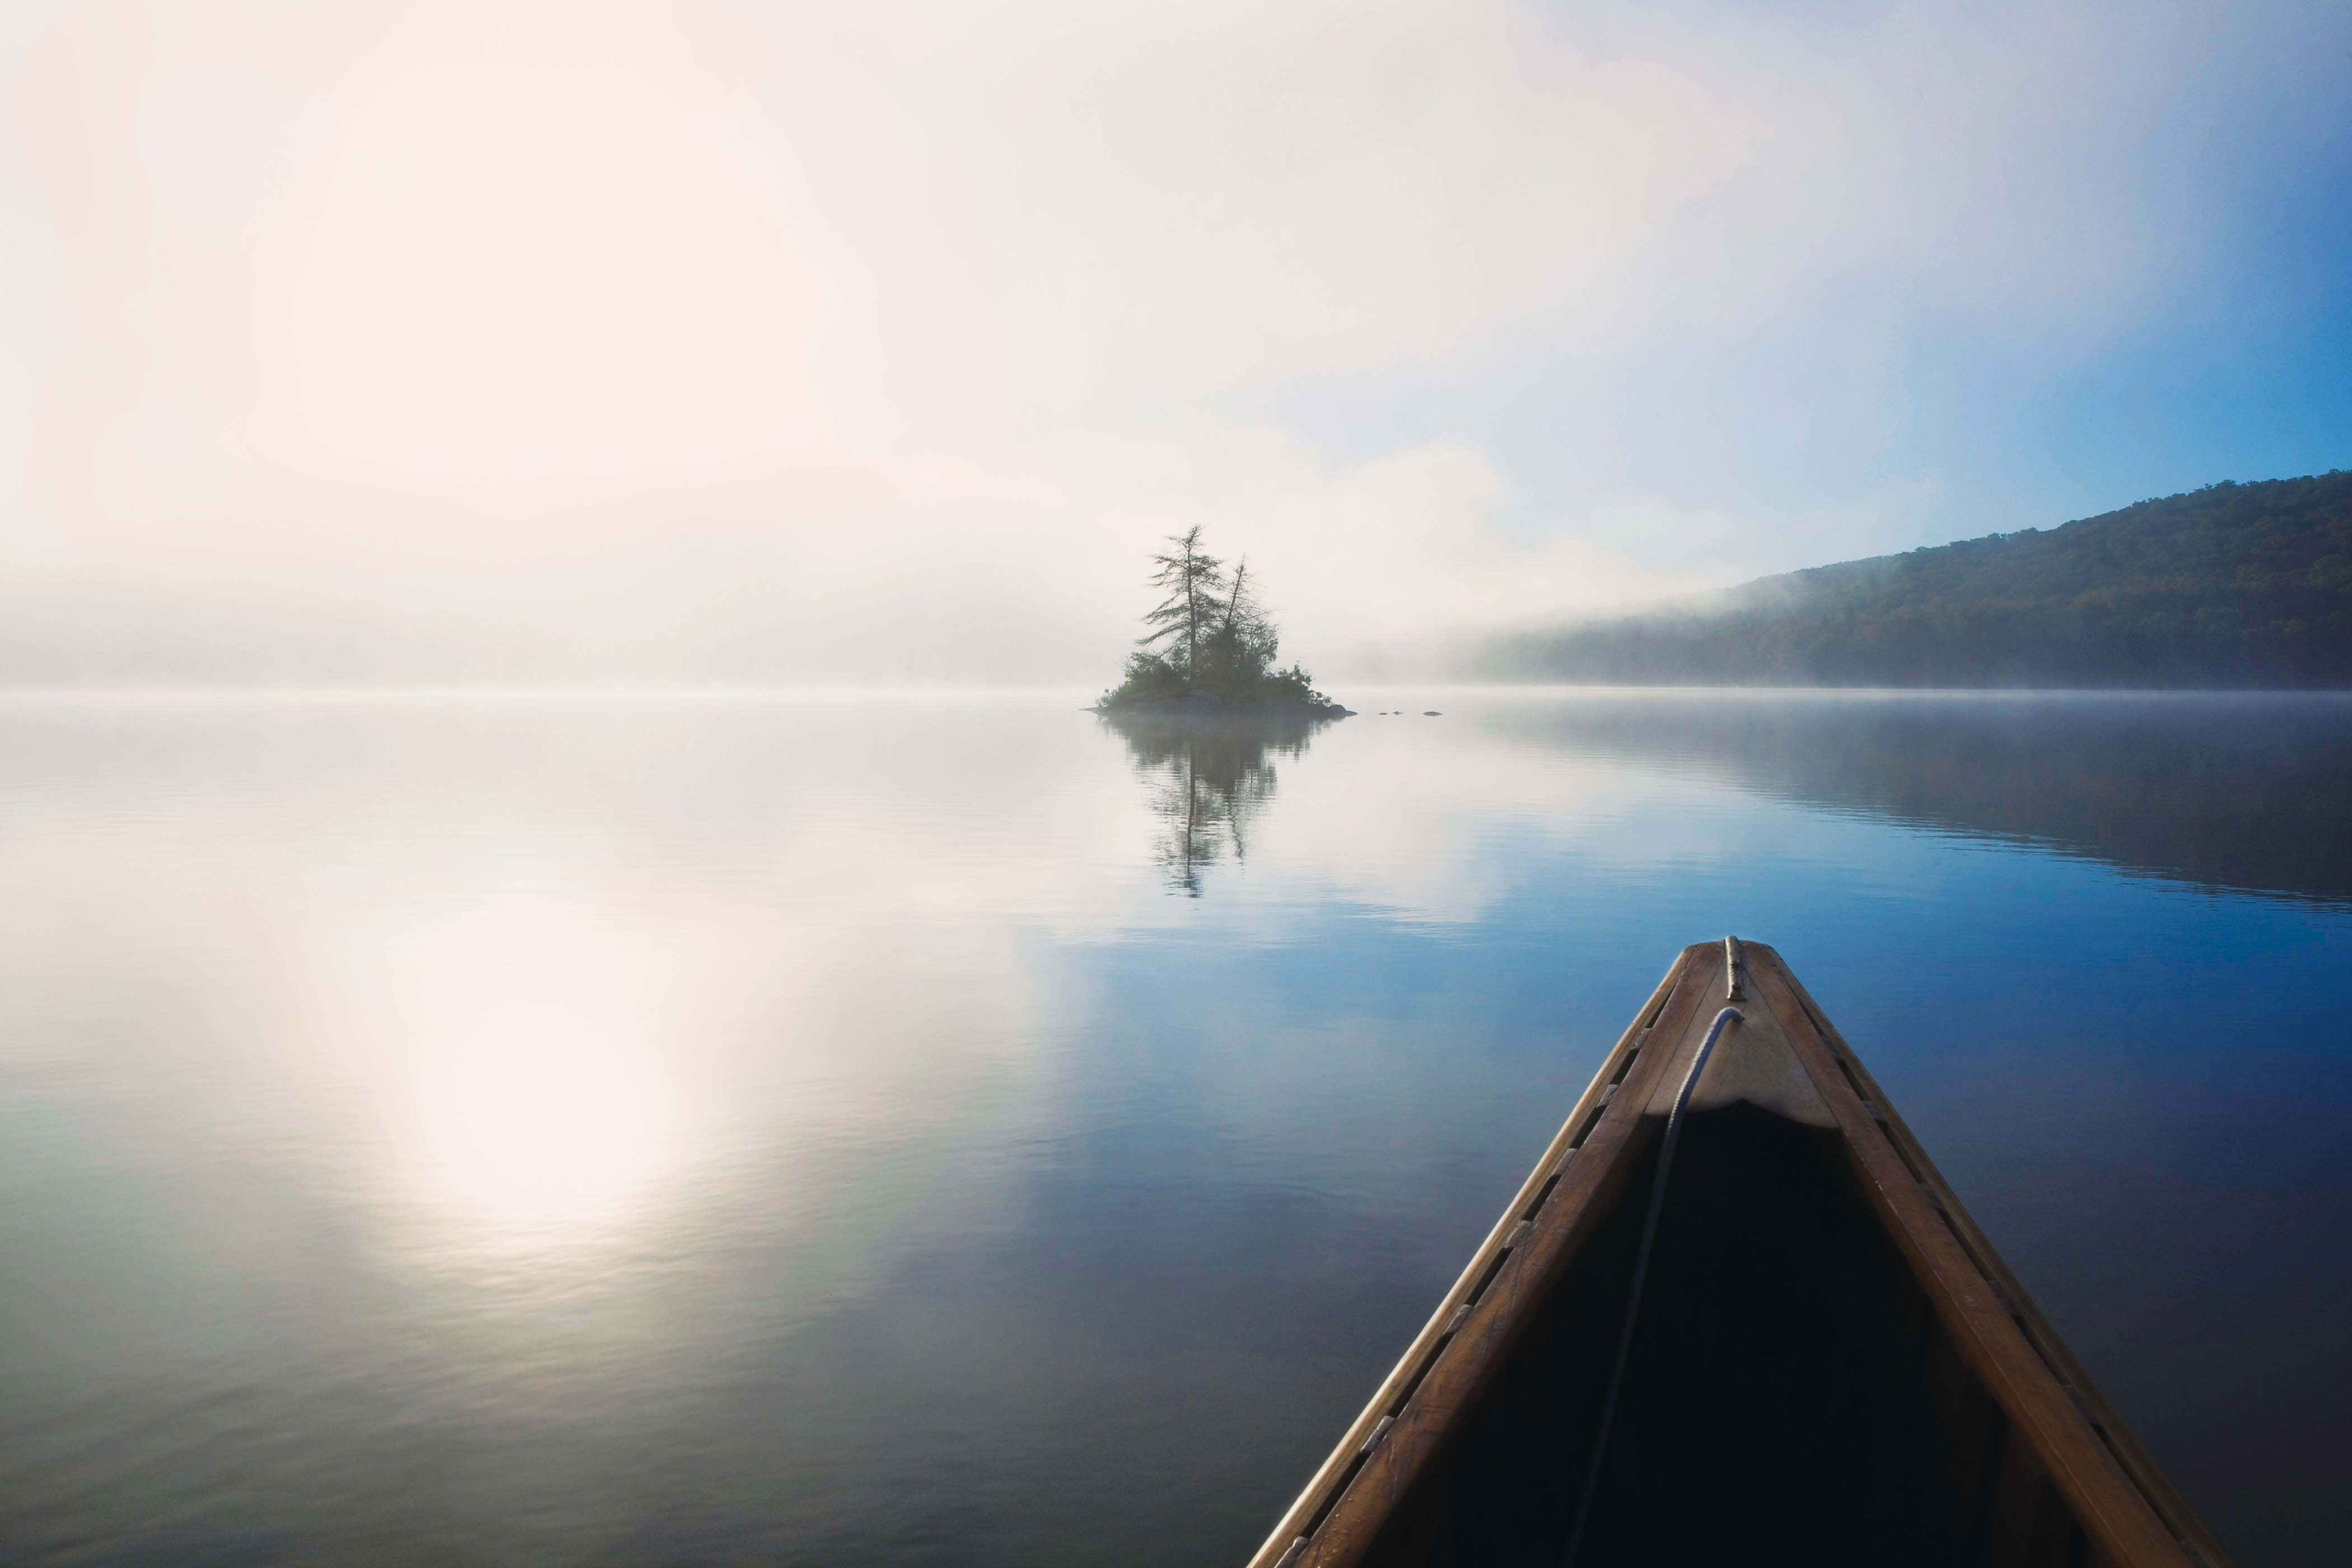 Canoe on misty lake